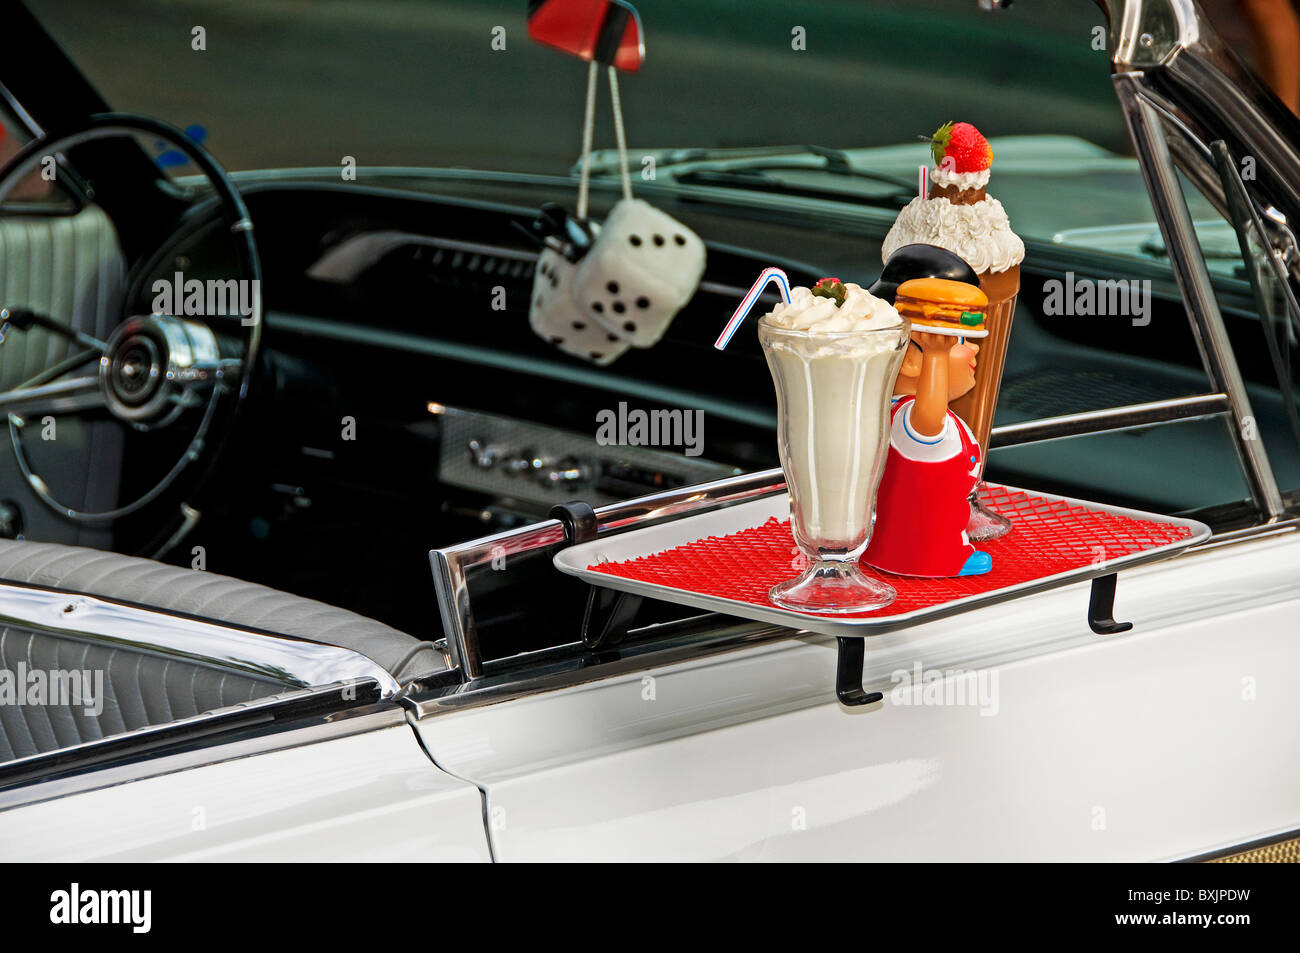 Fast food on hanging window tray at drive-in - Stock Image